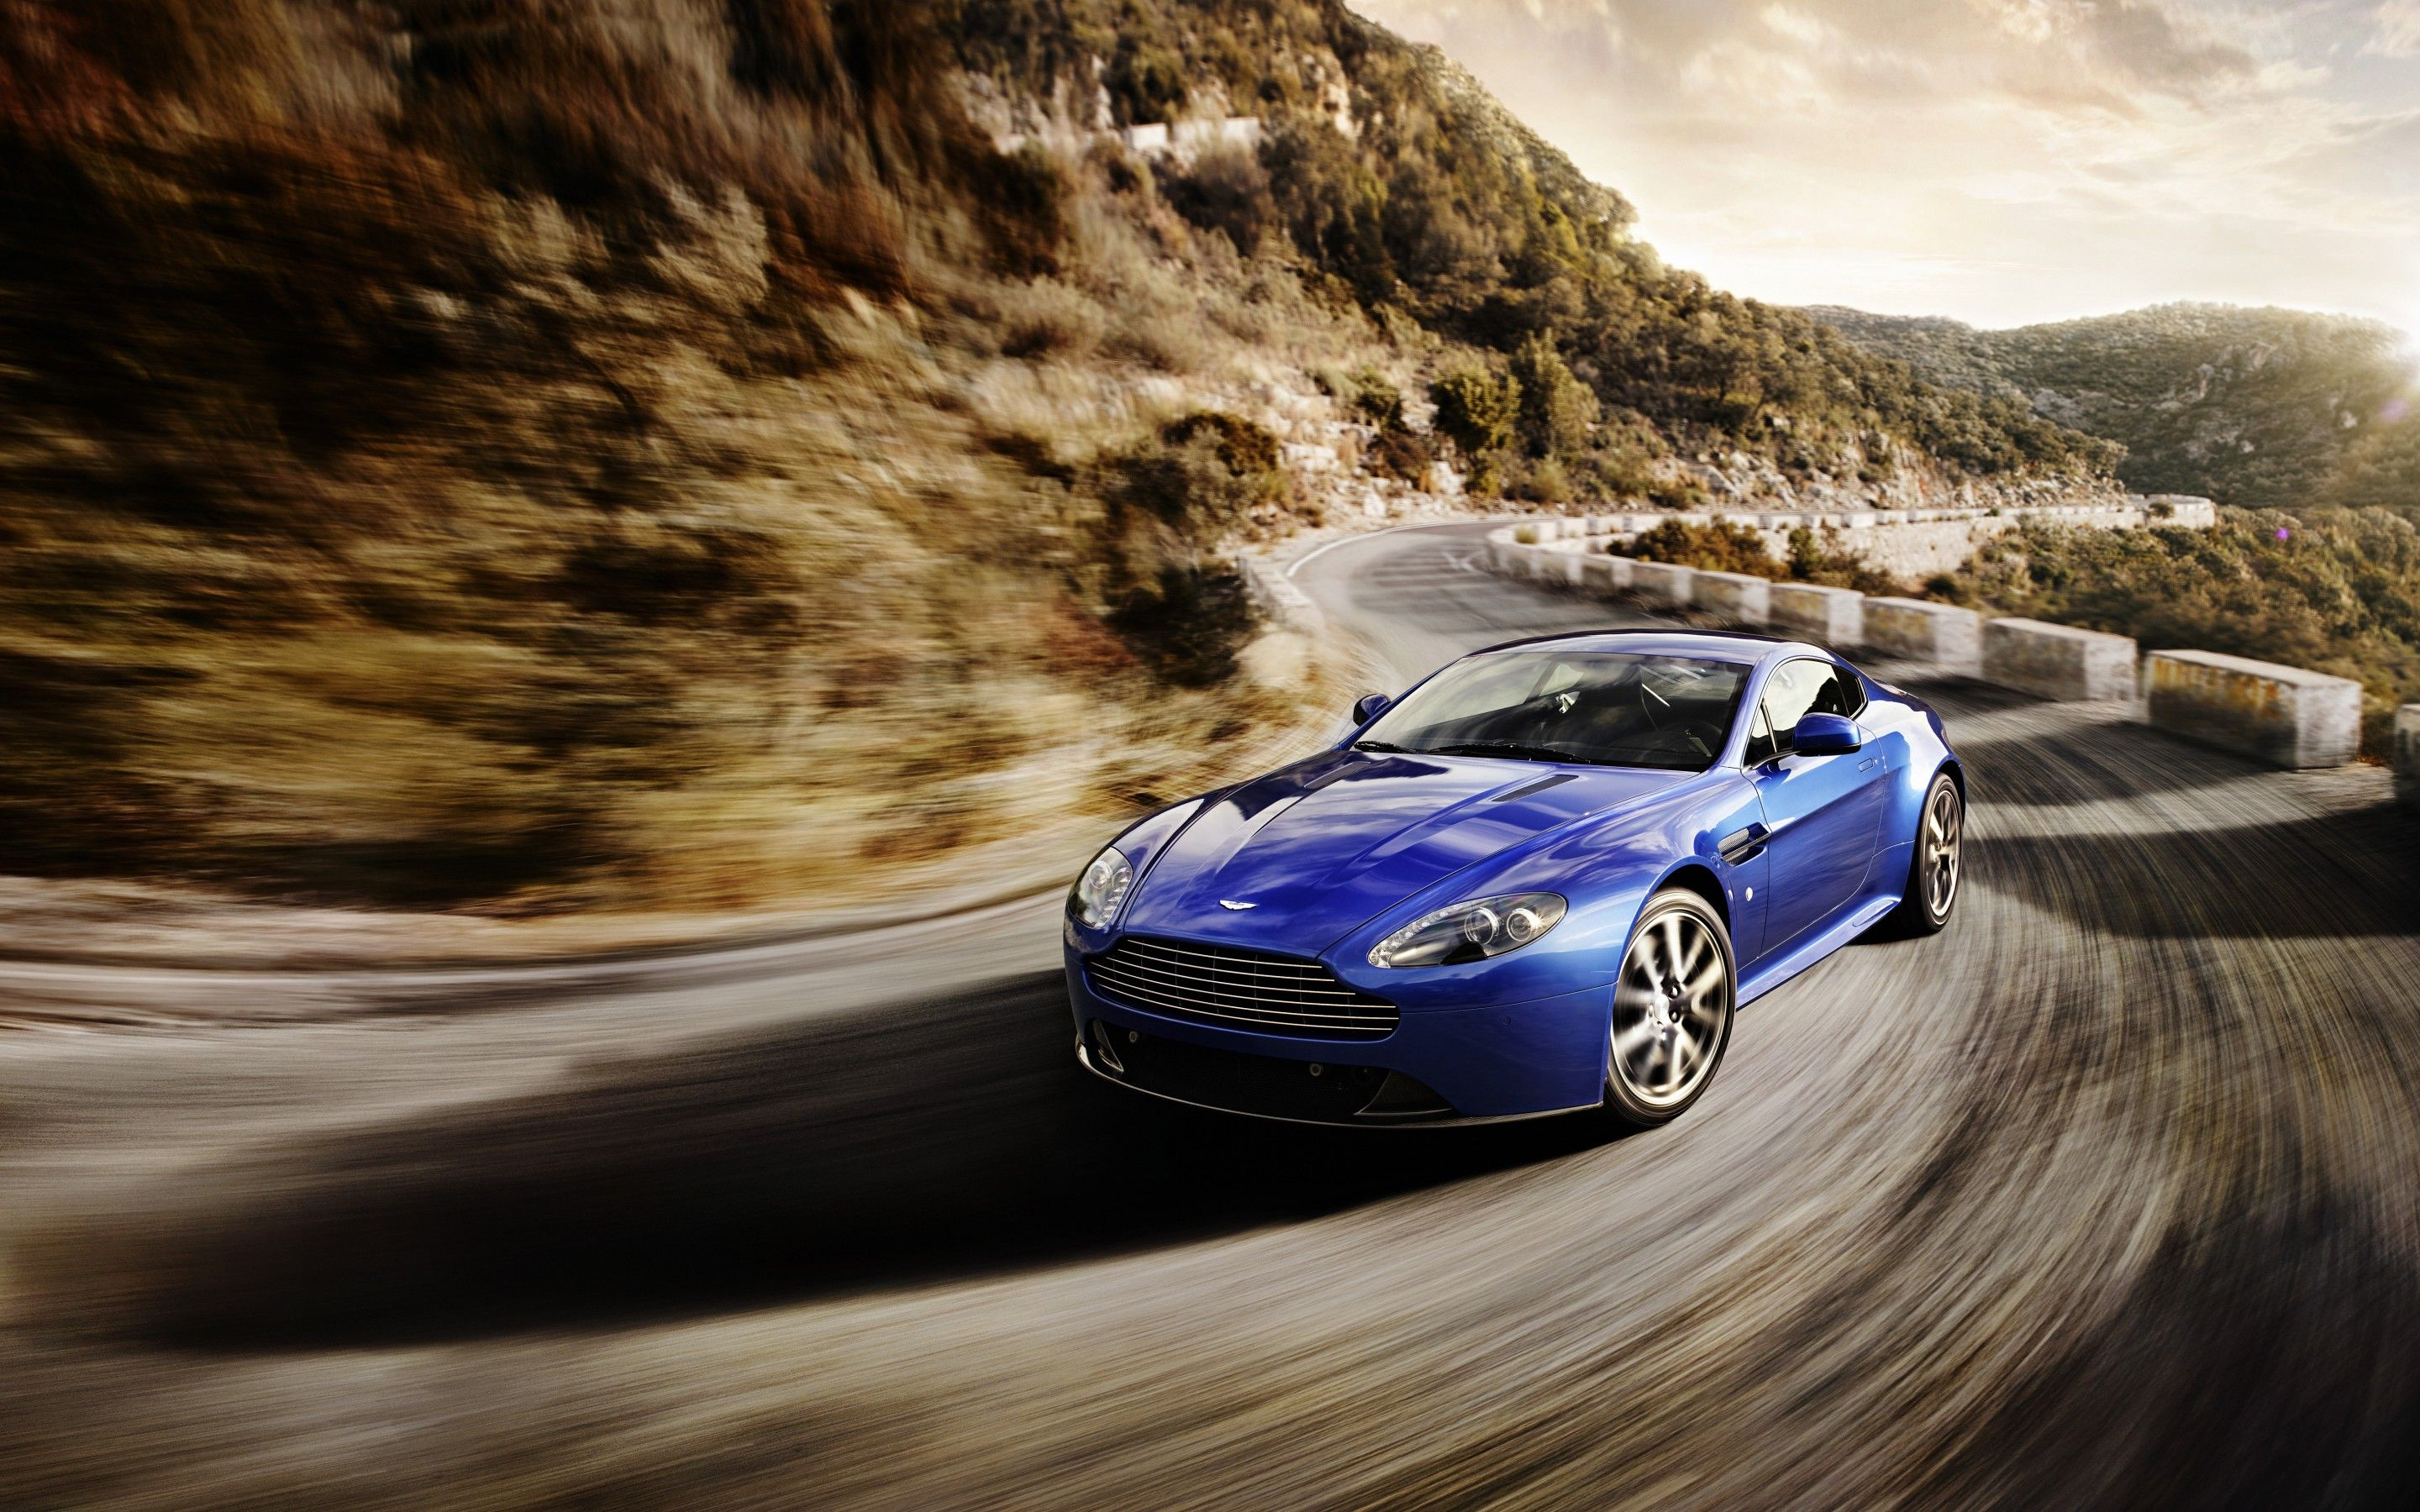 Wallpapers Aston Martin V8 Vantage S, 5K, Automotive,